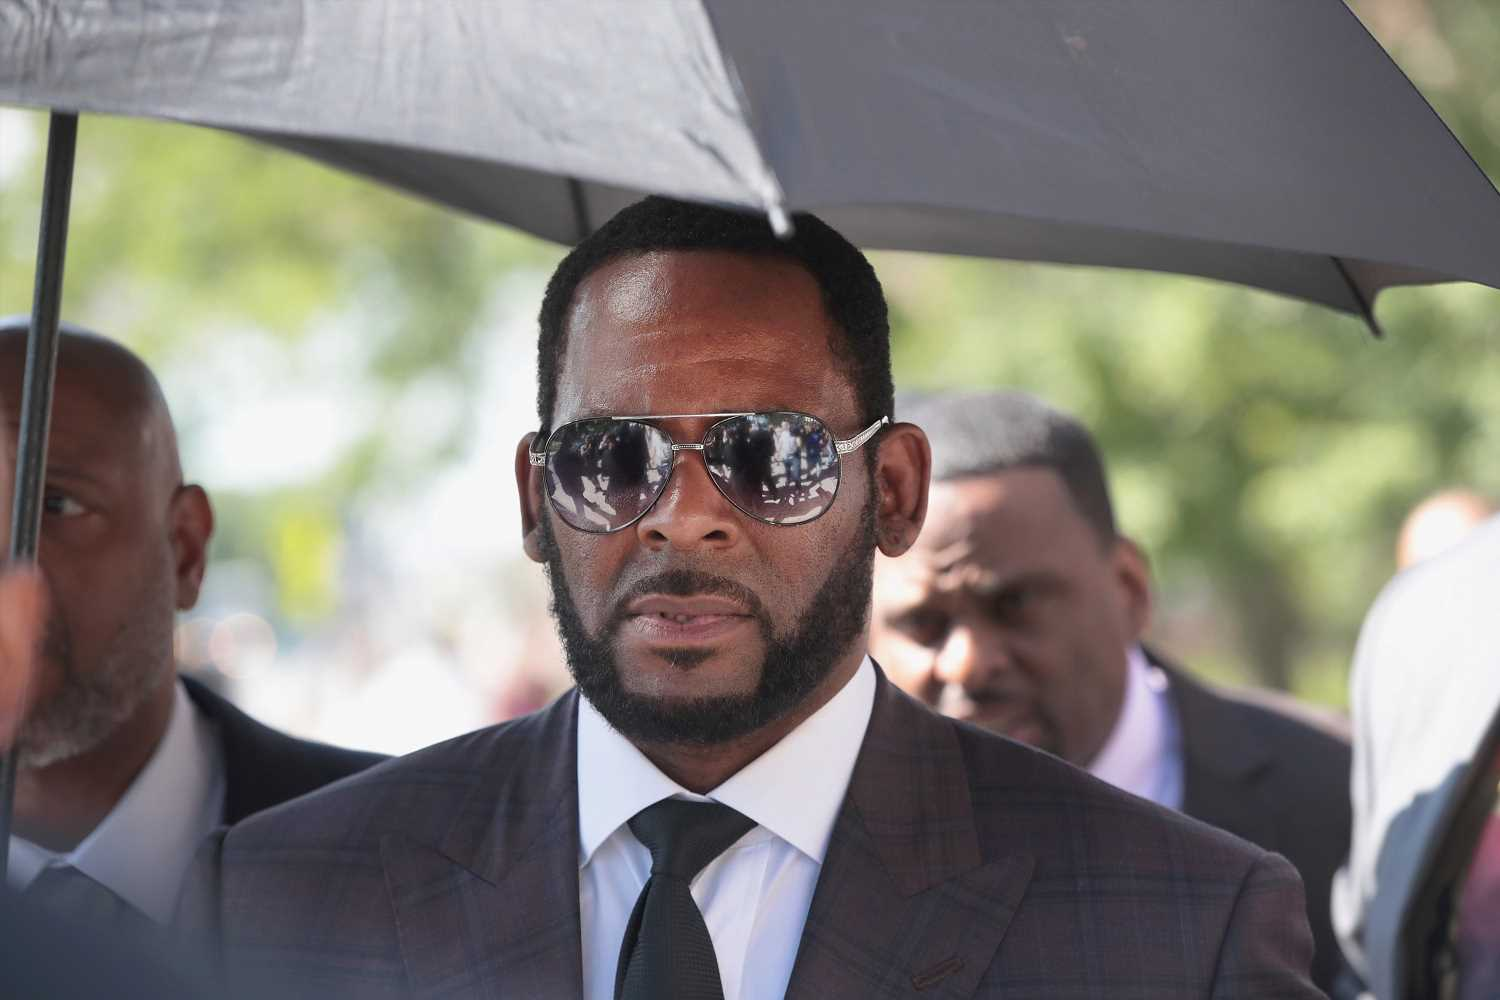 R. Kelly appears in court for child sex abuse case